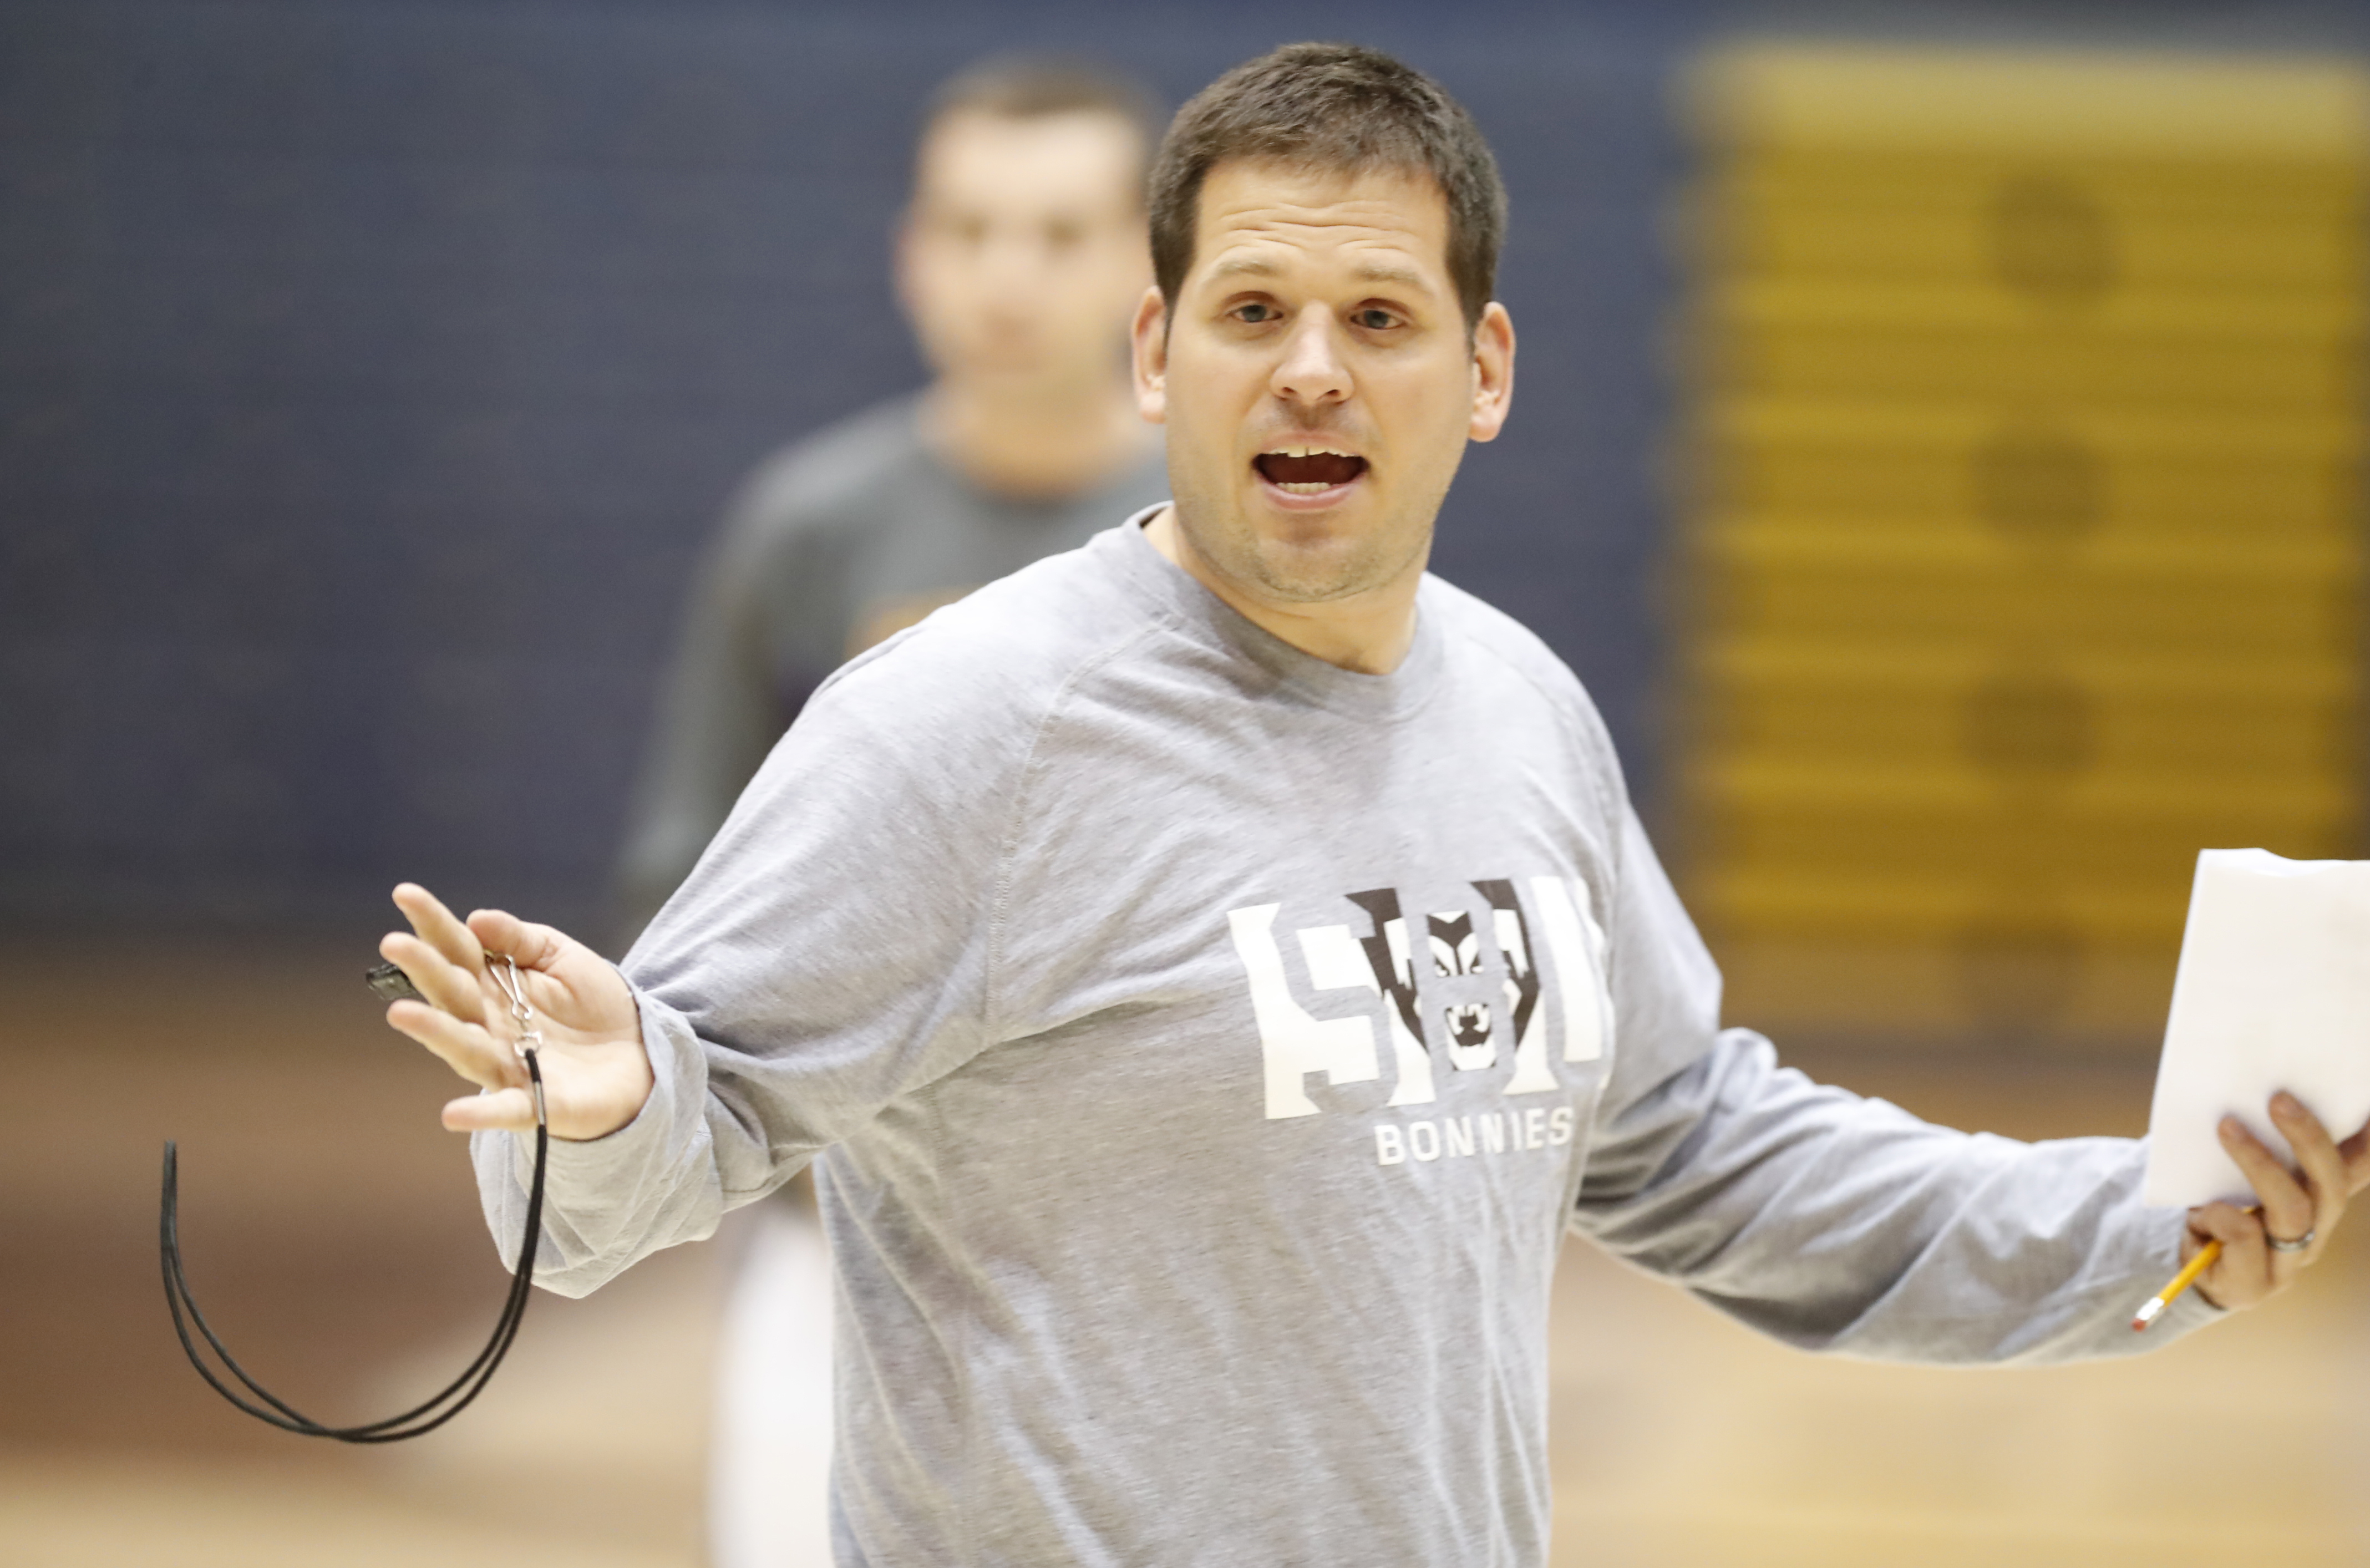 St. Bonaventure's women's basketball coach Jesse Fleming during practice on Monday, Nov. 7, 2016. (Harry Scull Jr./Buffalo News)